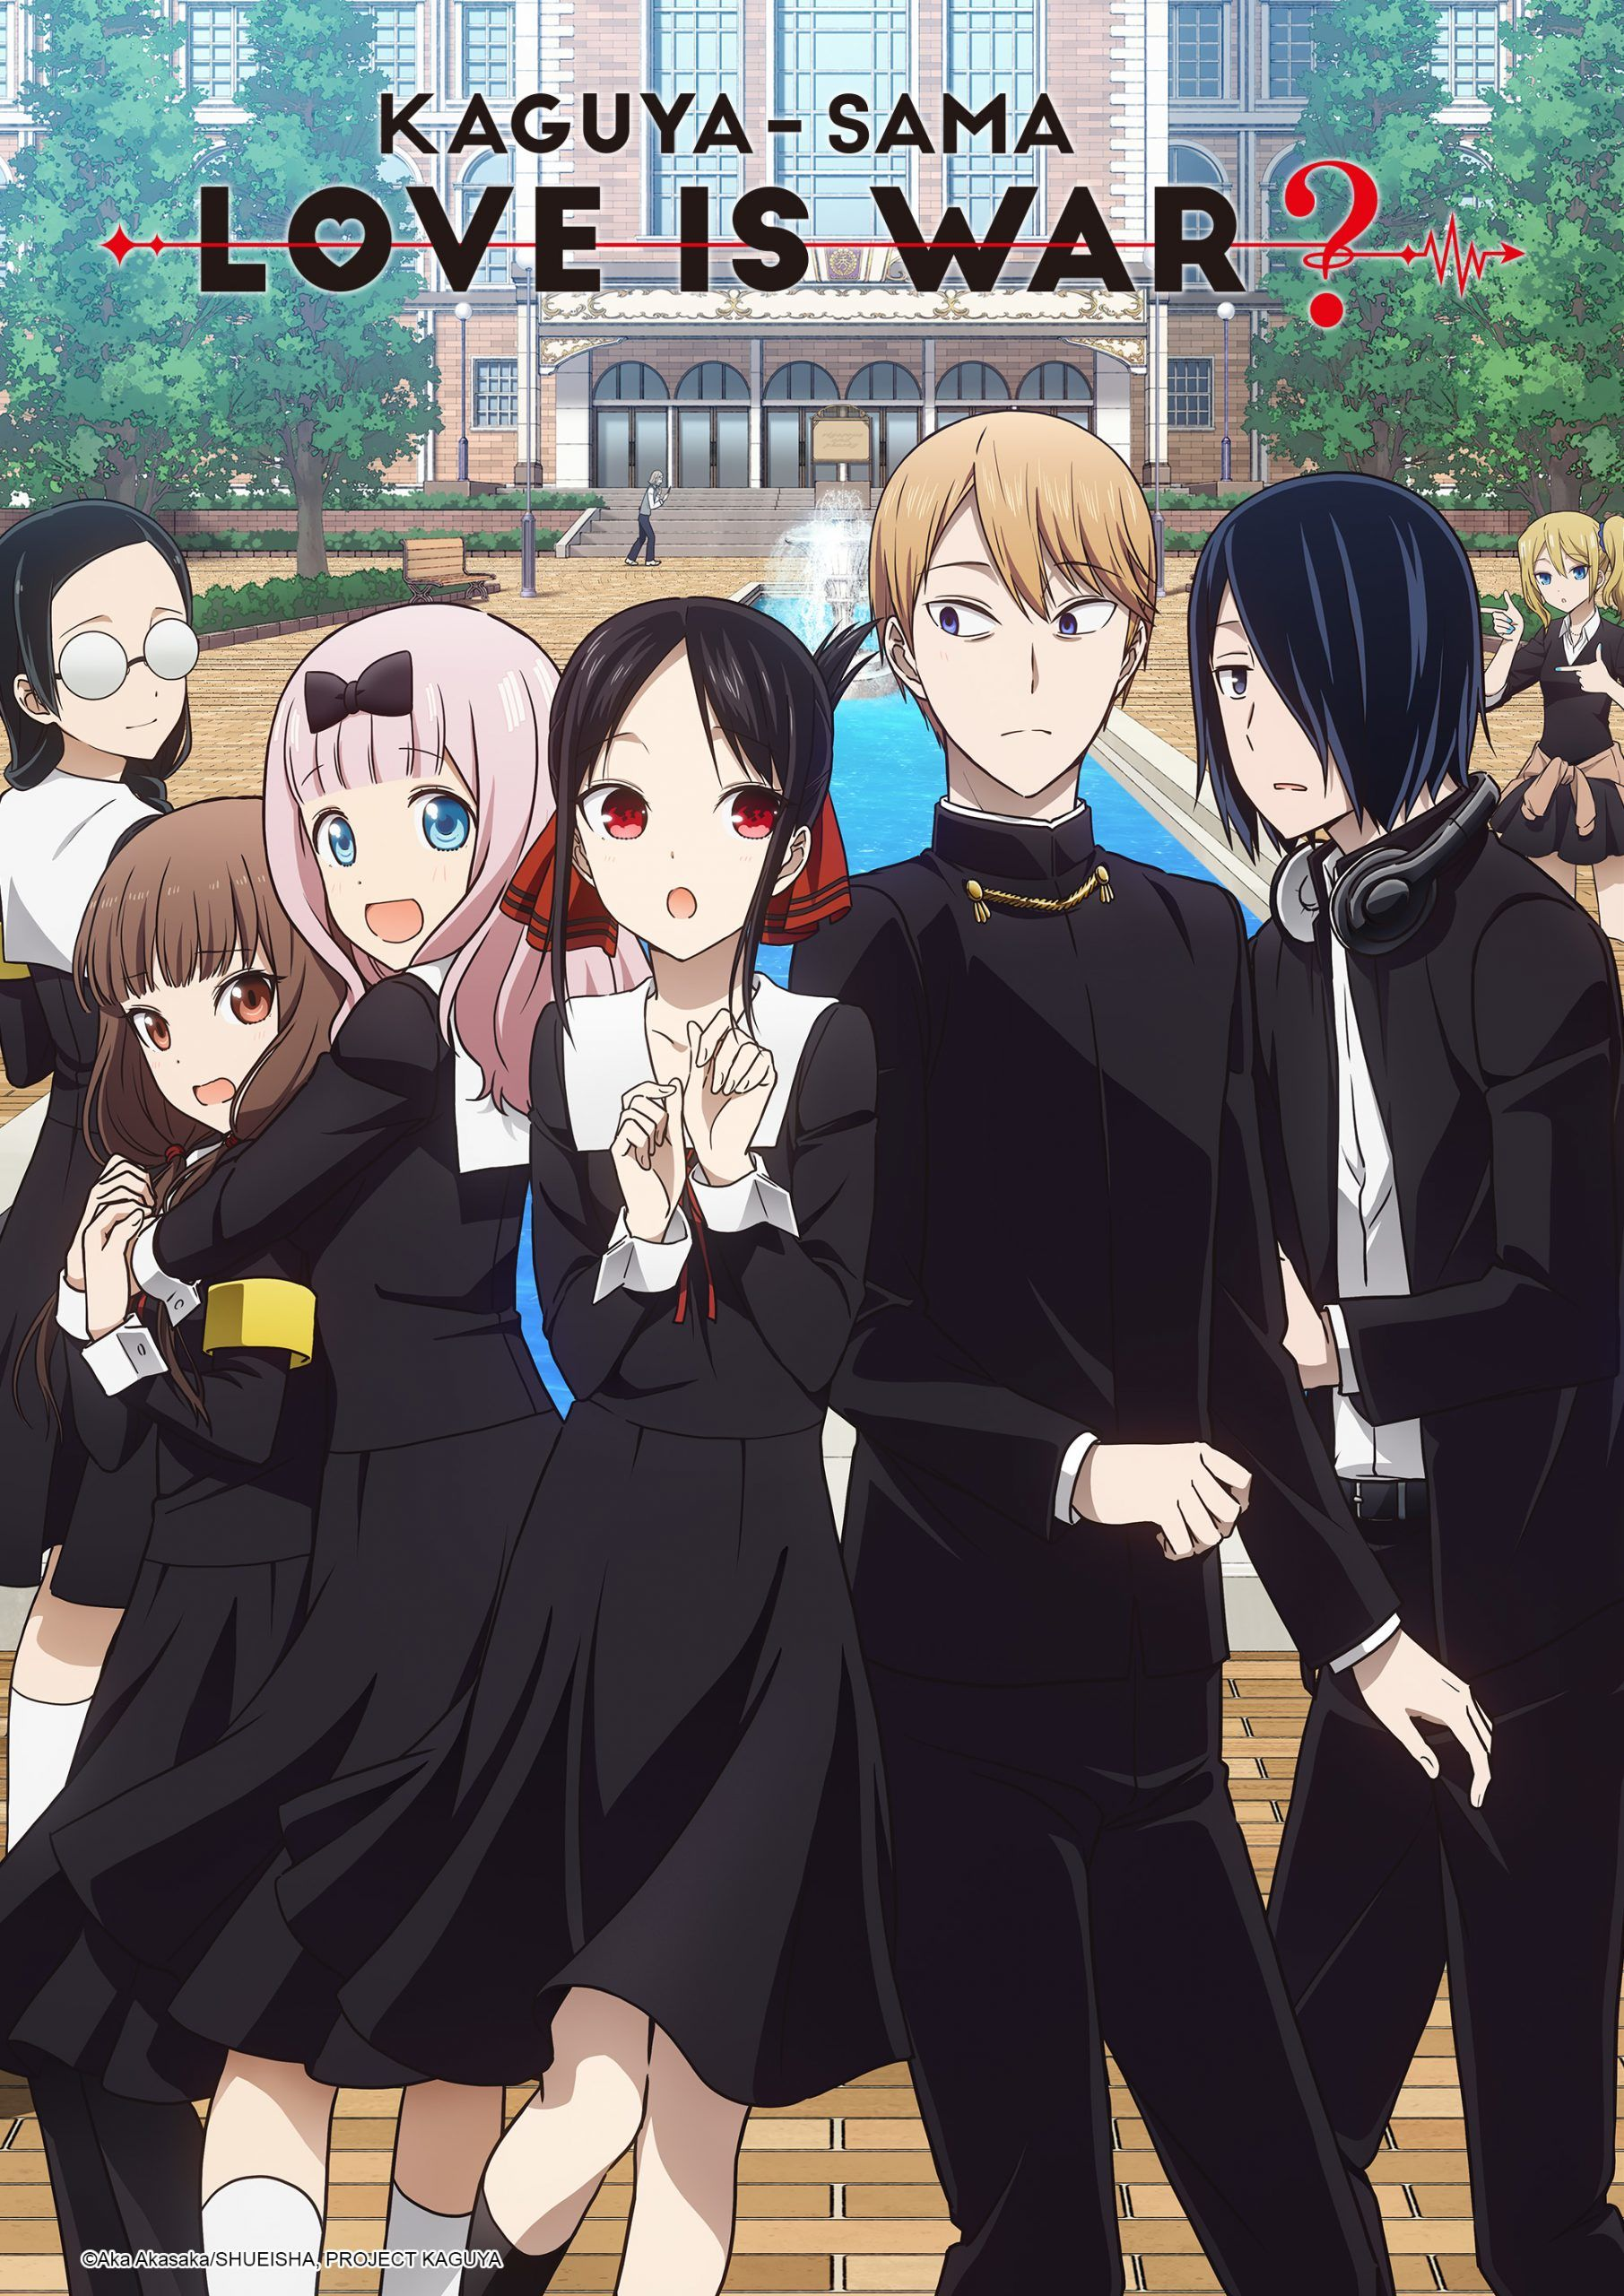 Kaguya-sama: Love is War ne zaman